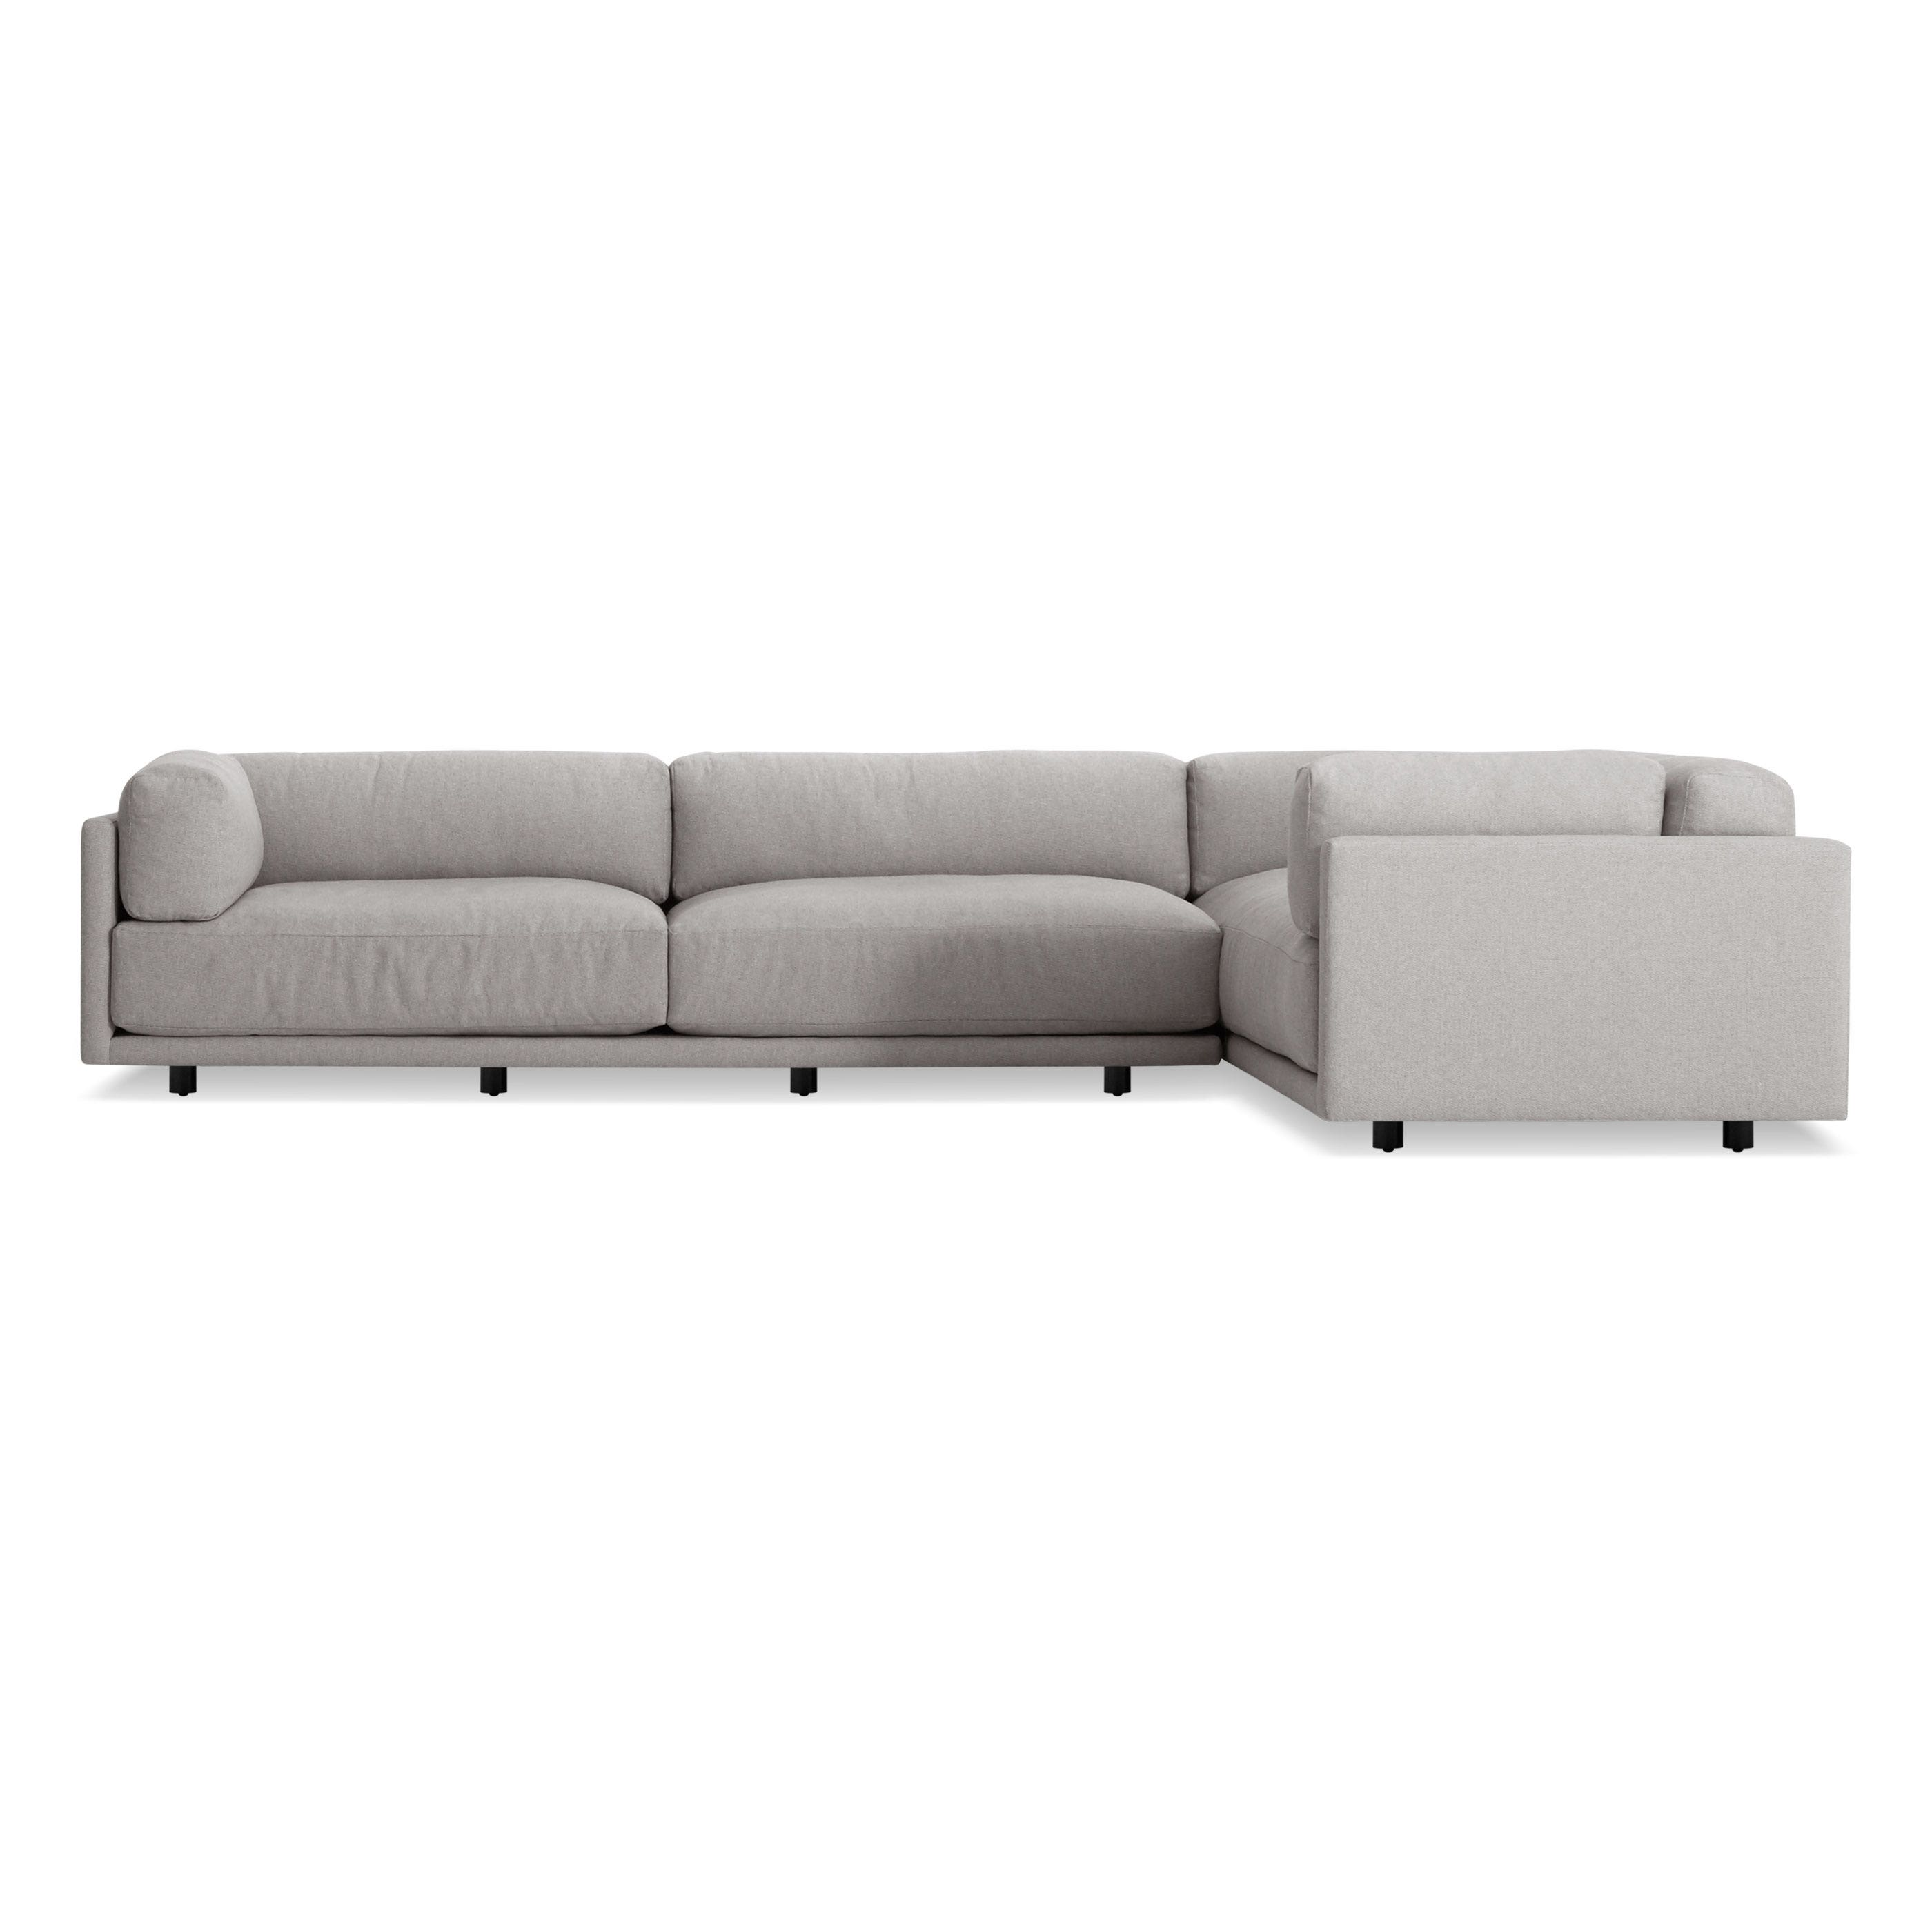 Previous Image Sunday Left L Sectional Sofa   Agnew Grey ...